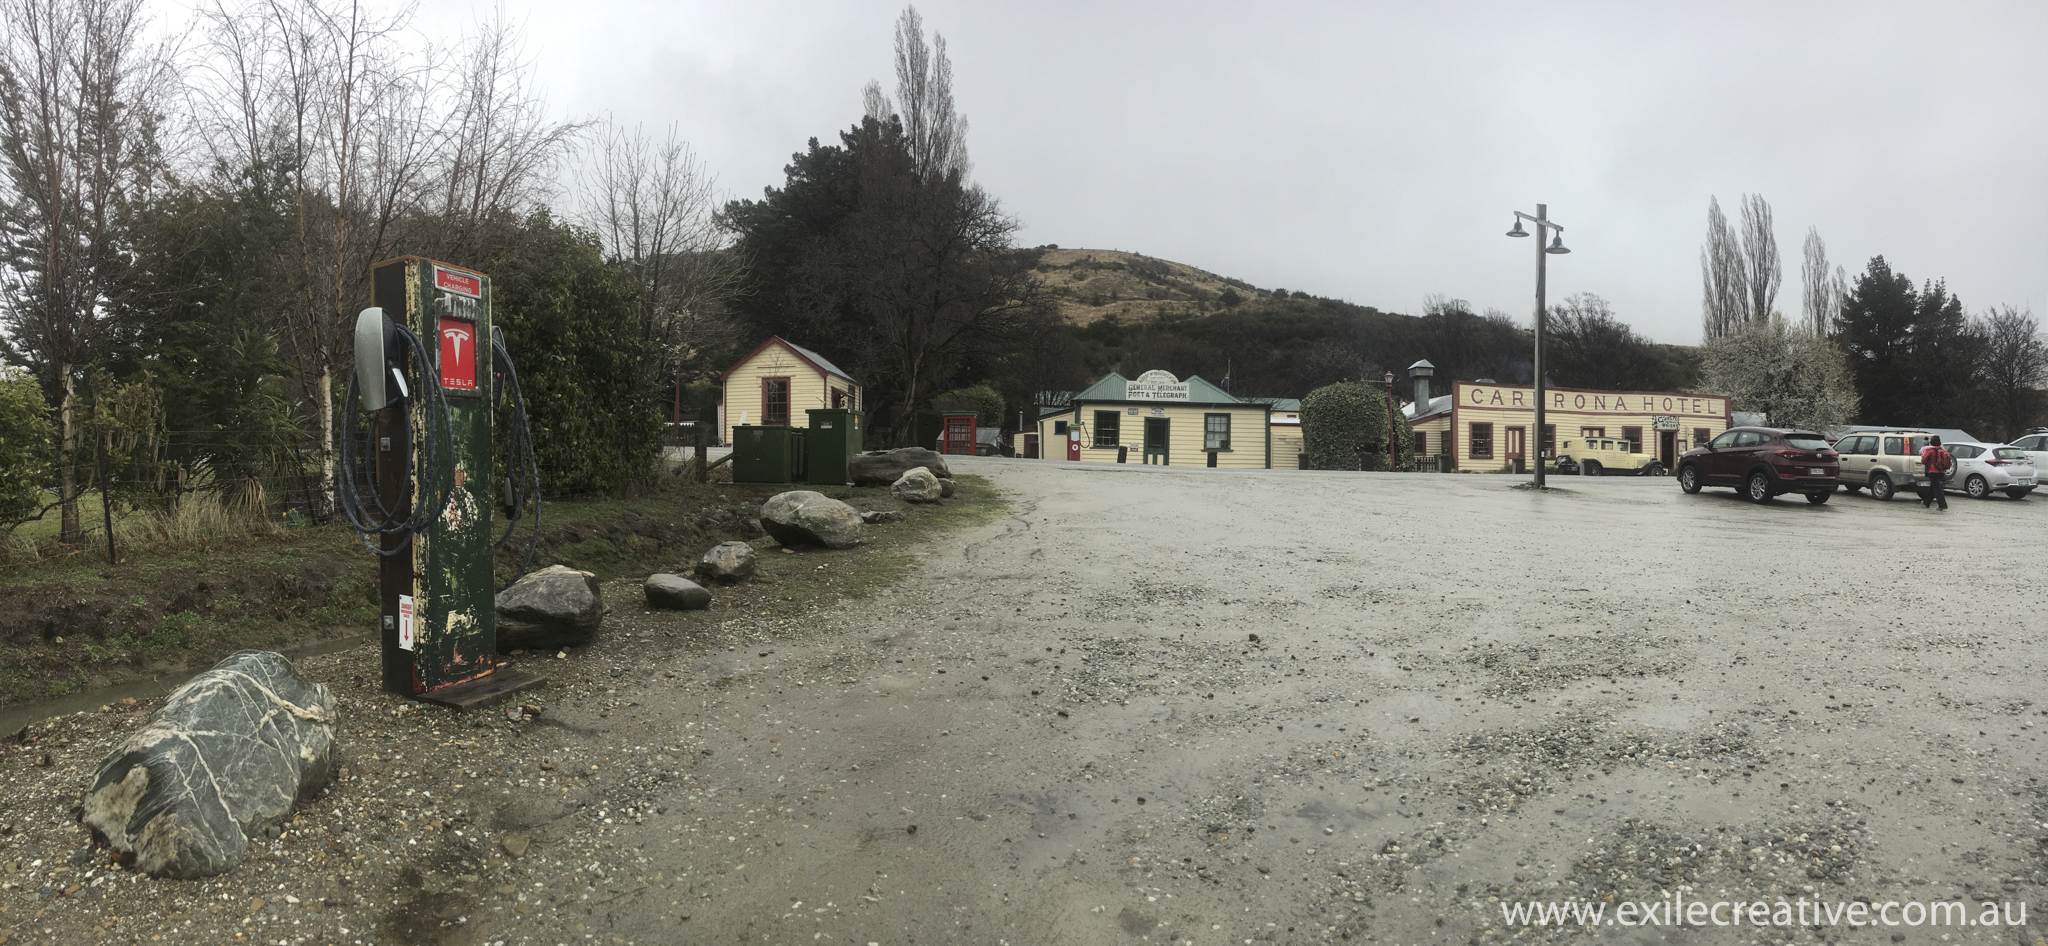 A rainy afternoon spent at the Cadrona pub.  I was amazed to see a Tesla charging station here.  Apparently the test track is in the nearby hills!  iPhone 6s pano